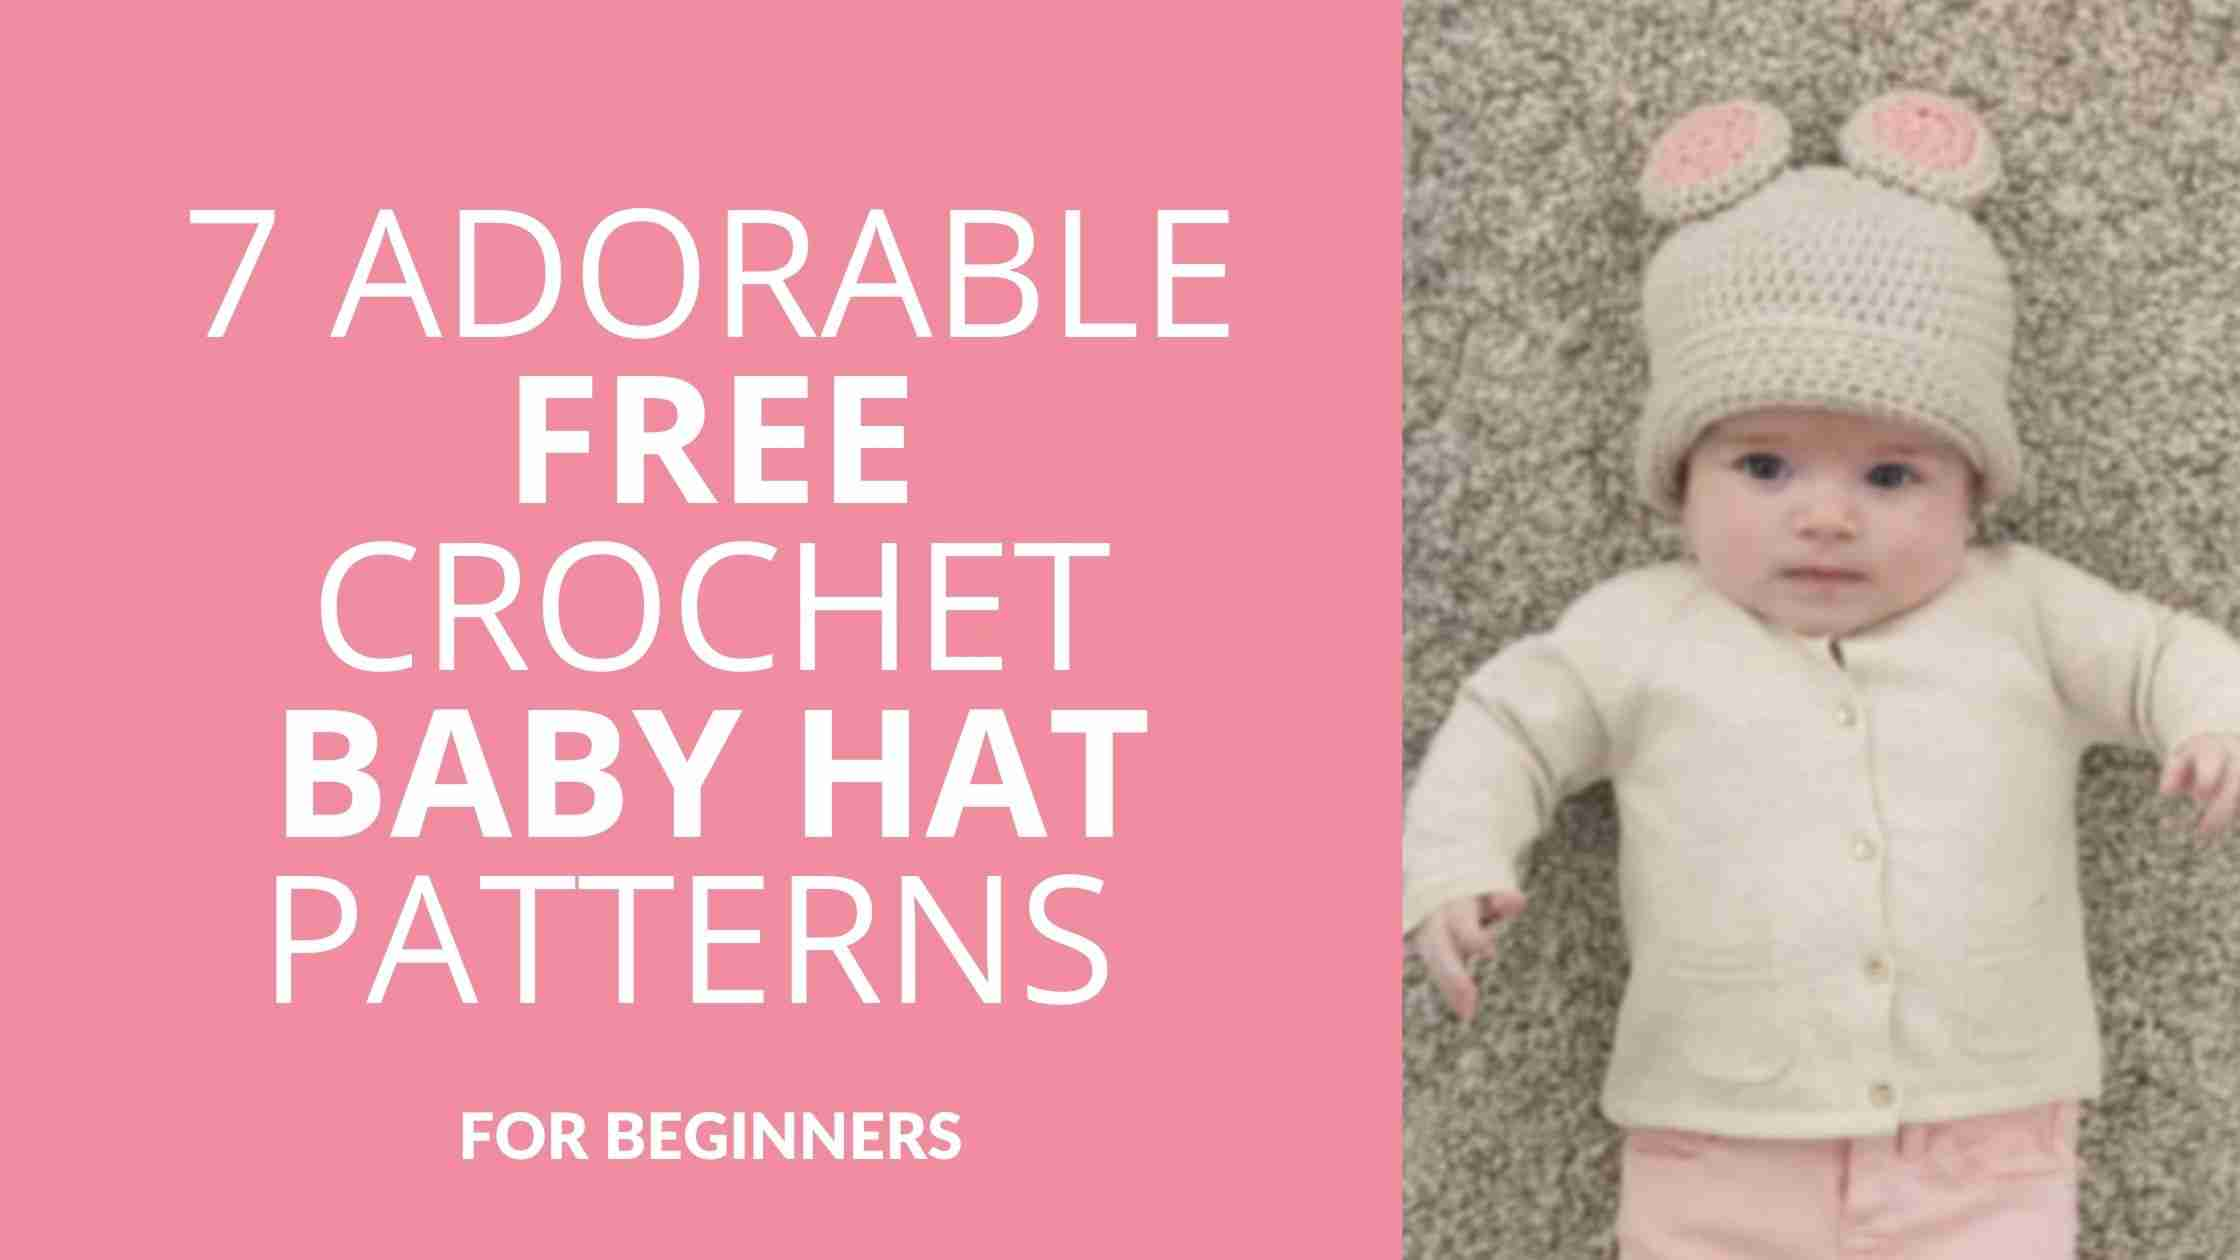 7 Adorable Free Crochet Baby Hat Patterns - Start Crochet